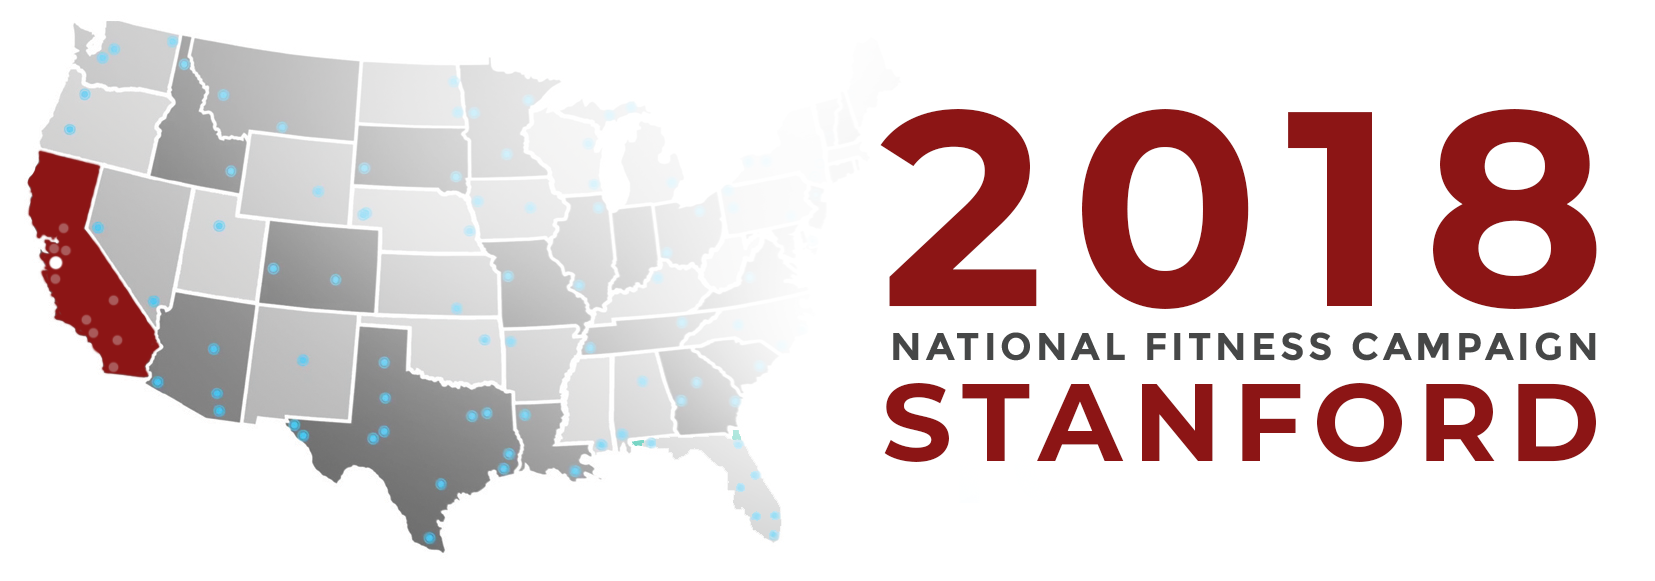 2018 Campaign Logo Stanford.png